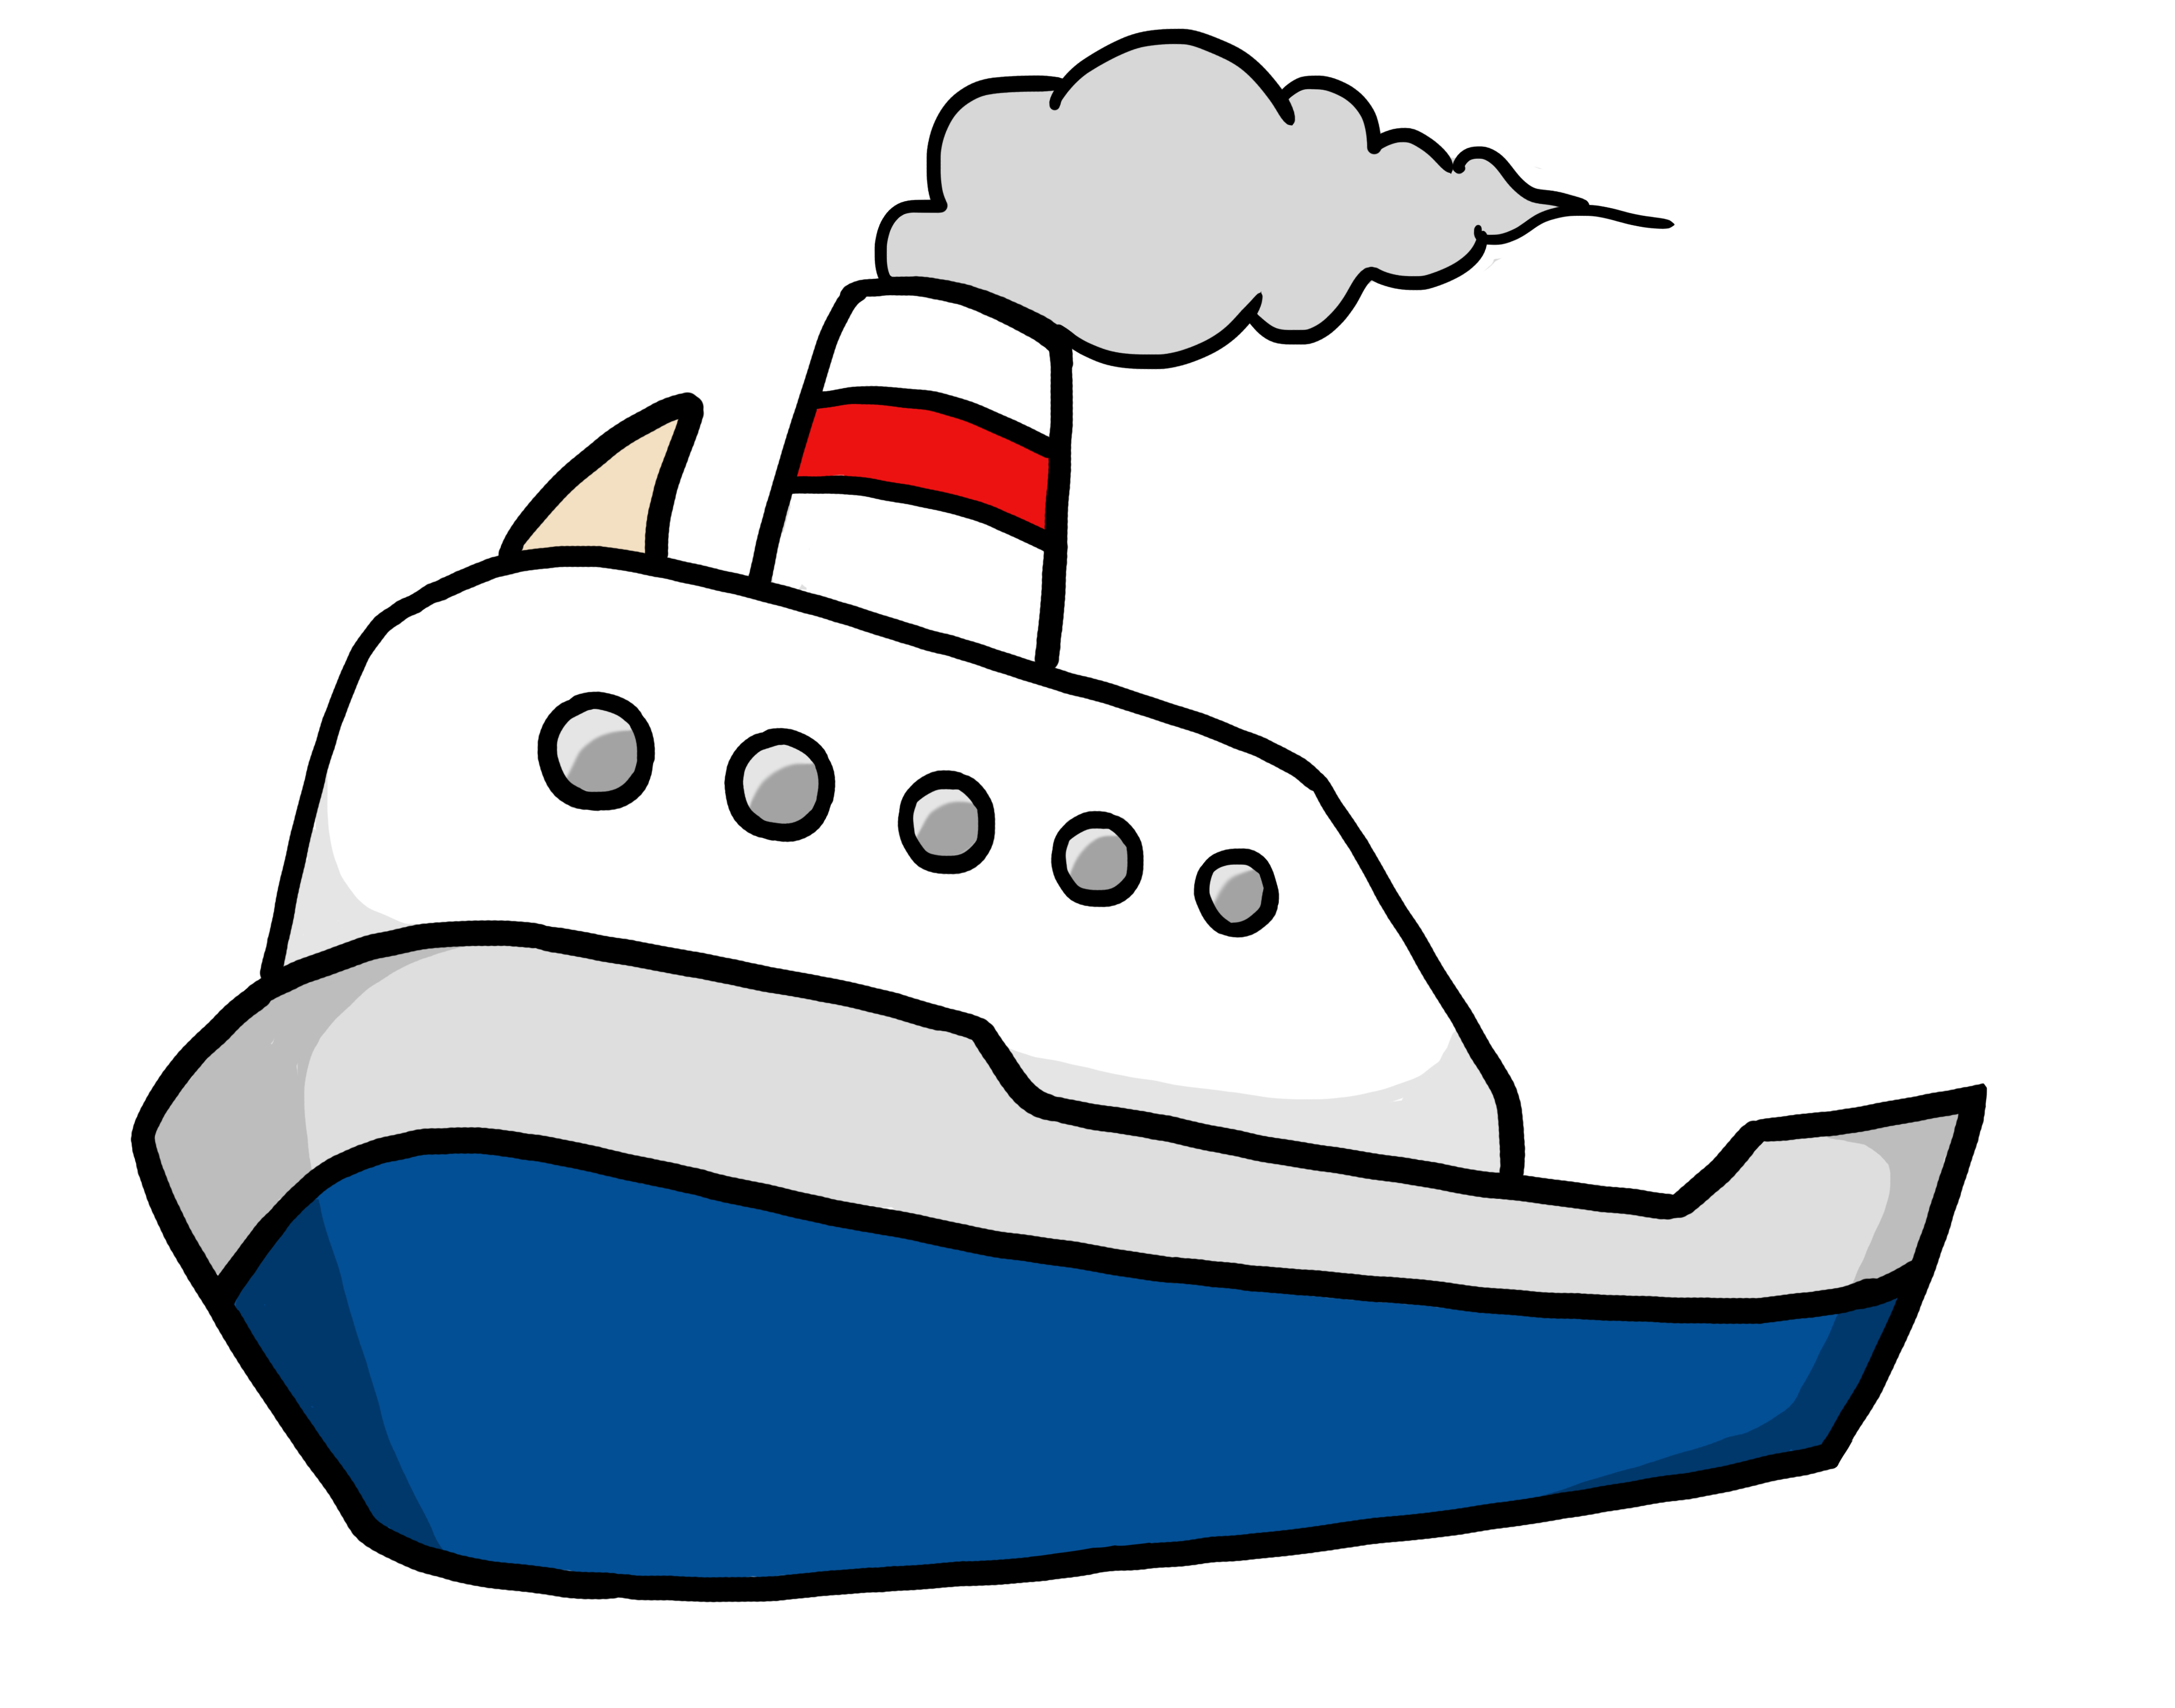 sailboat clipart water transportation